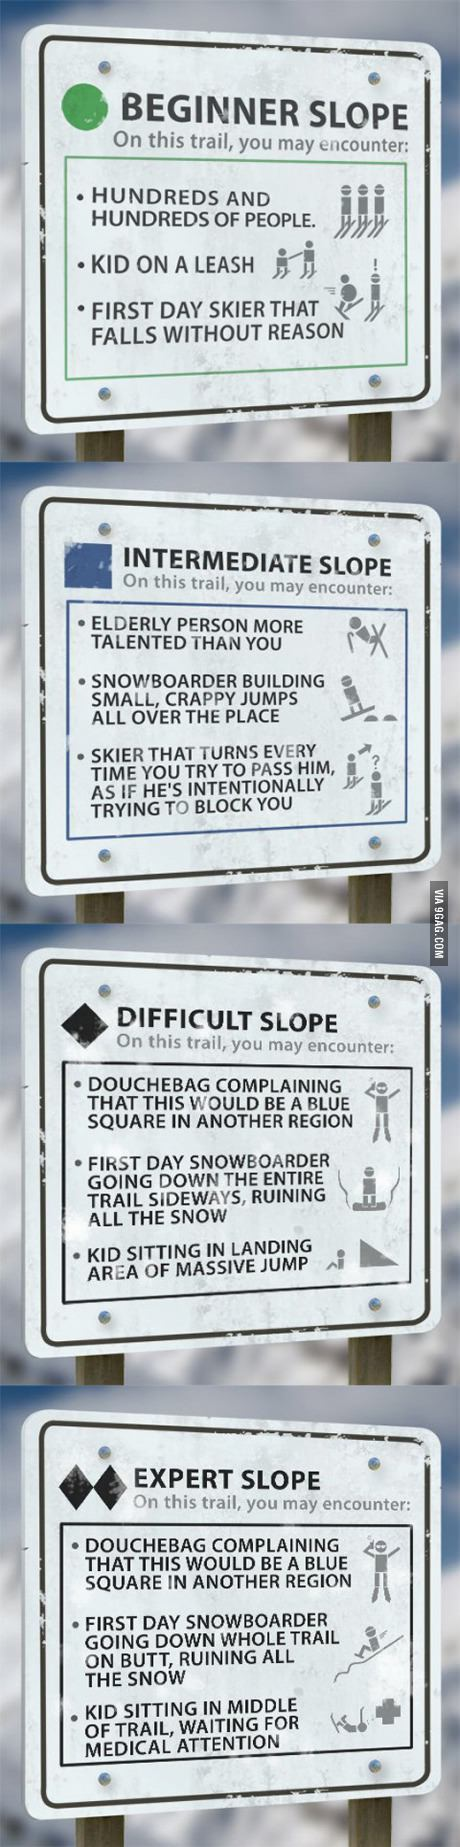 Pretty much sums up all ski trails.